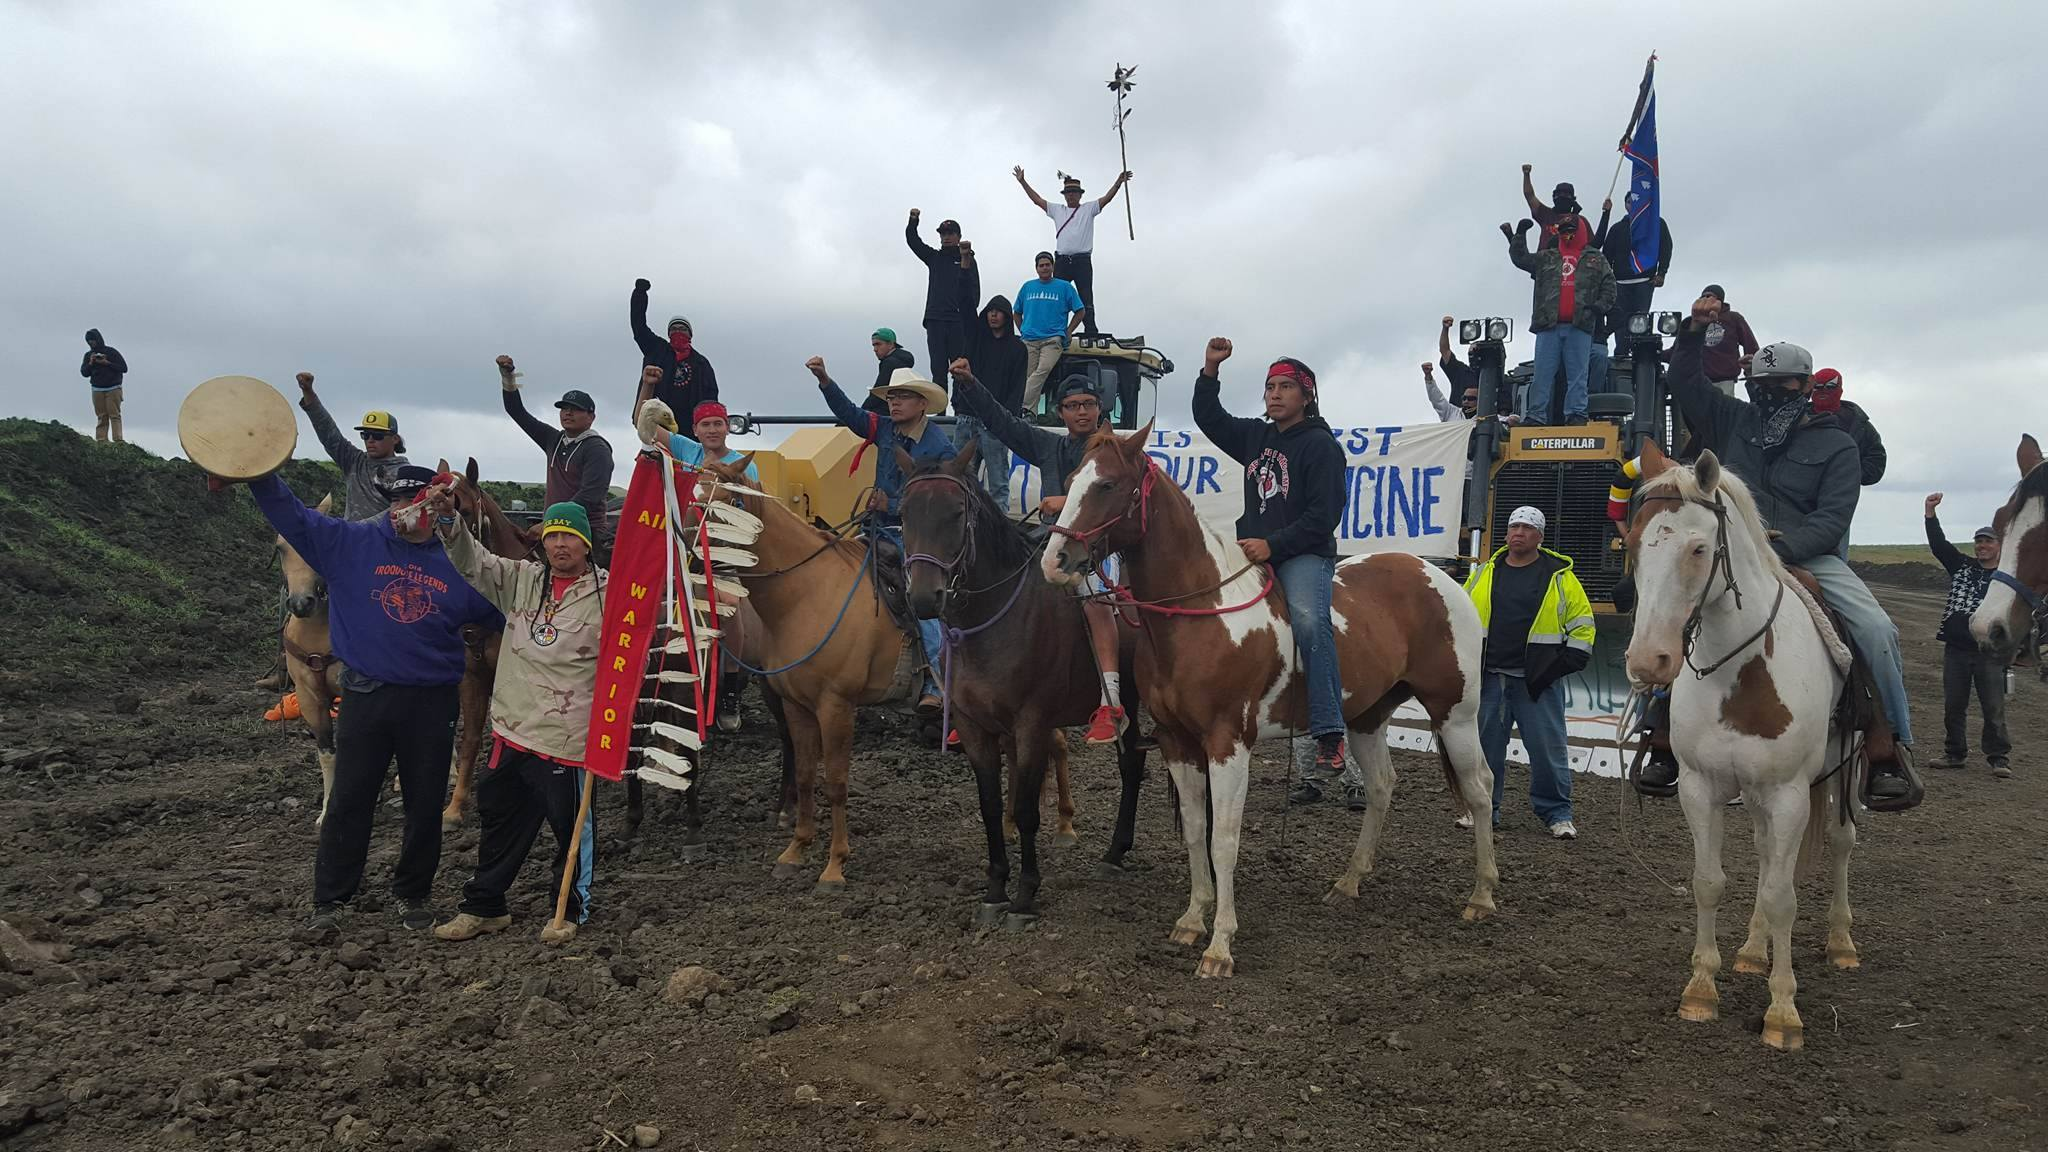 Steve Russell: Legal encounters and the Dakota Access Pipeline